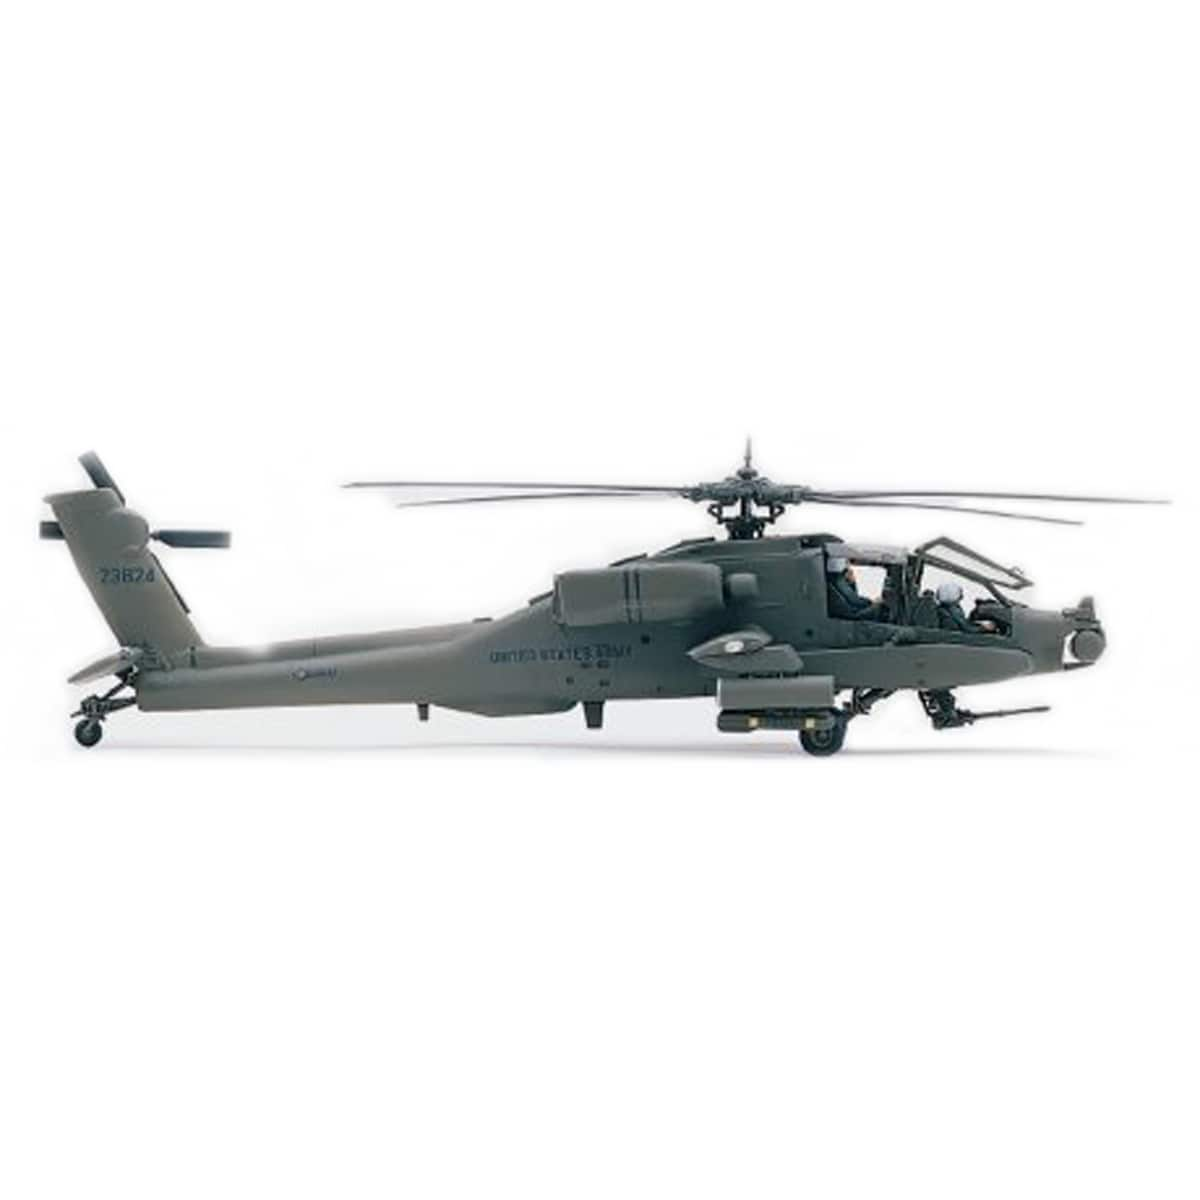 Revell-Monogram Revell AH-64 Apache Helicopter 1:48 Plastic Model Kit at Sears.com